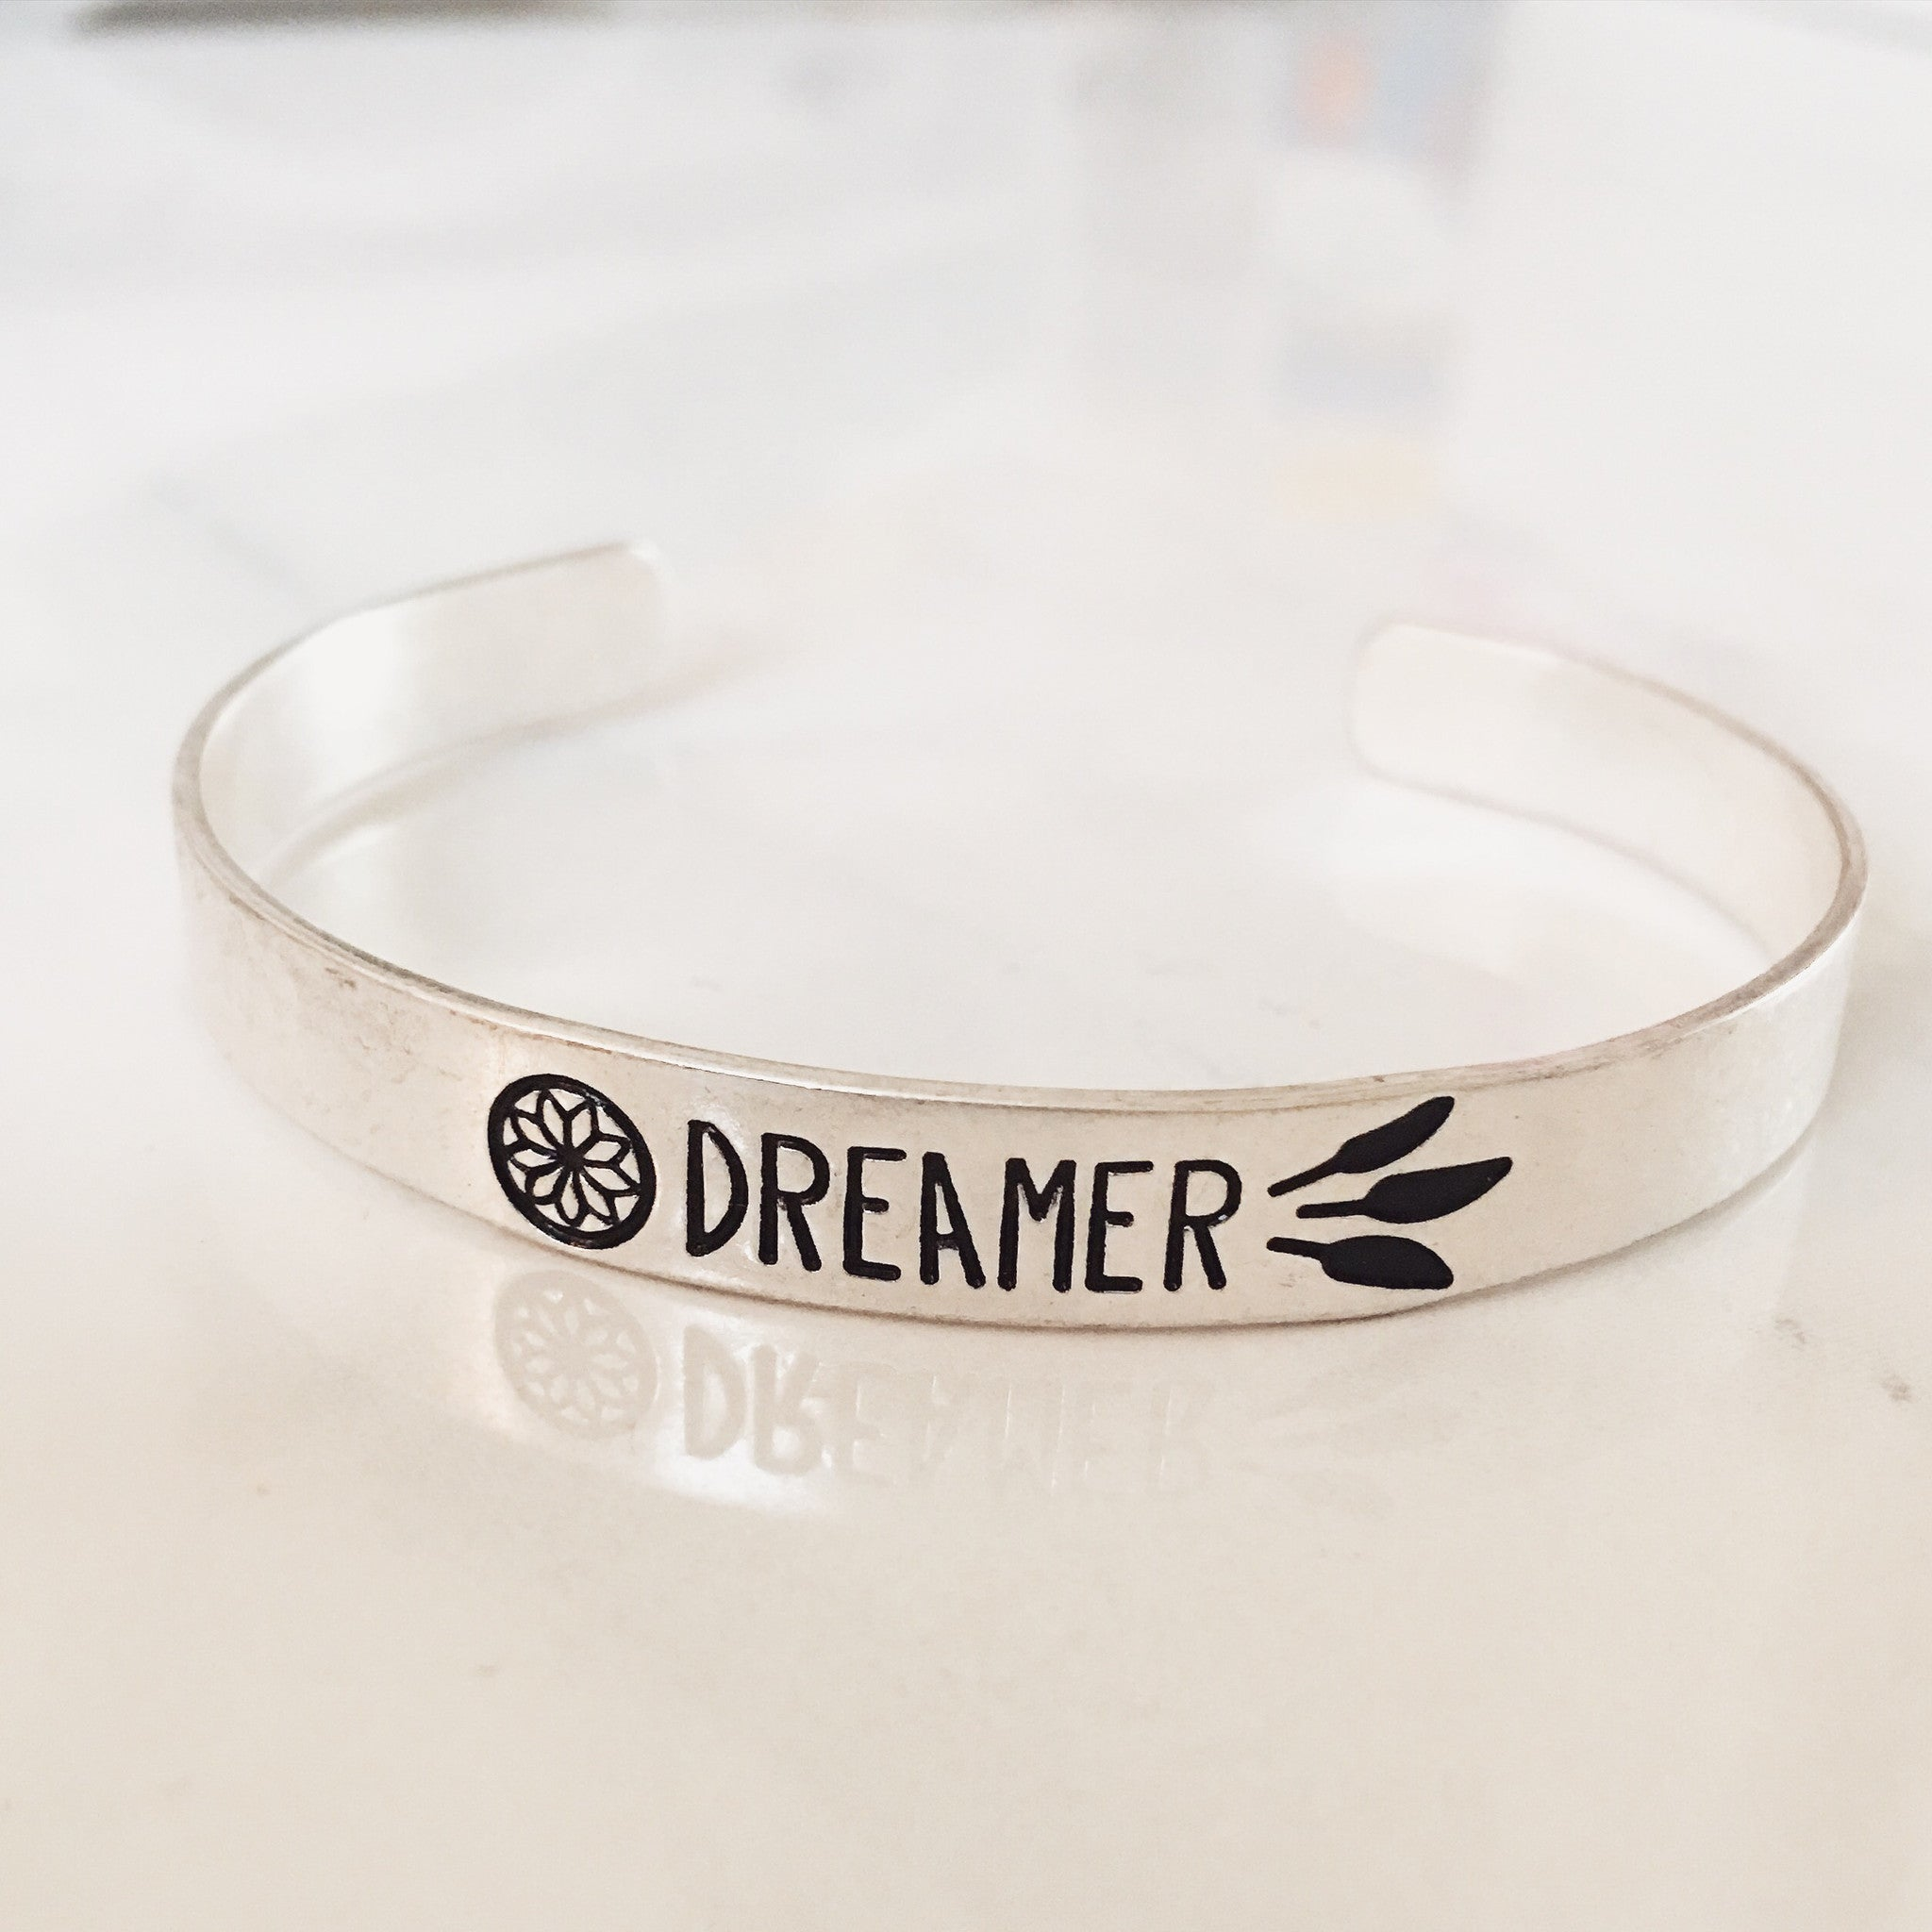 DREAMER - Bangle